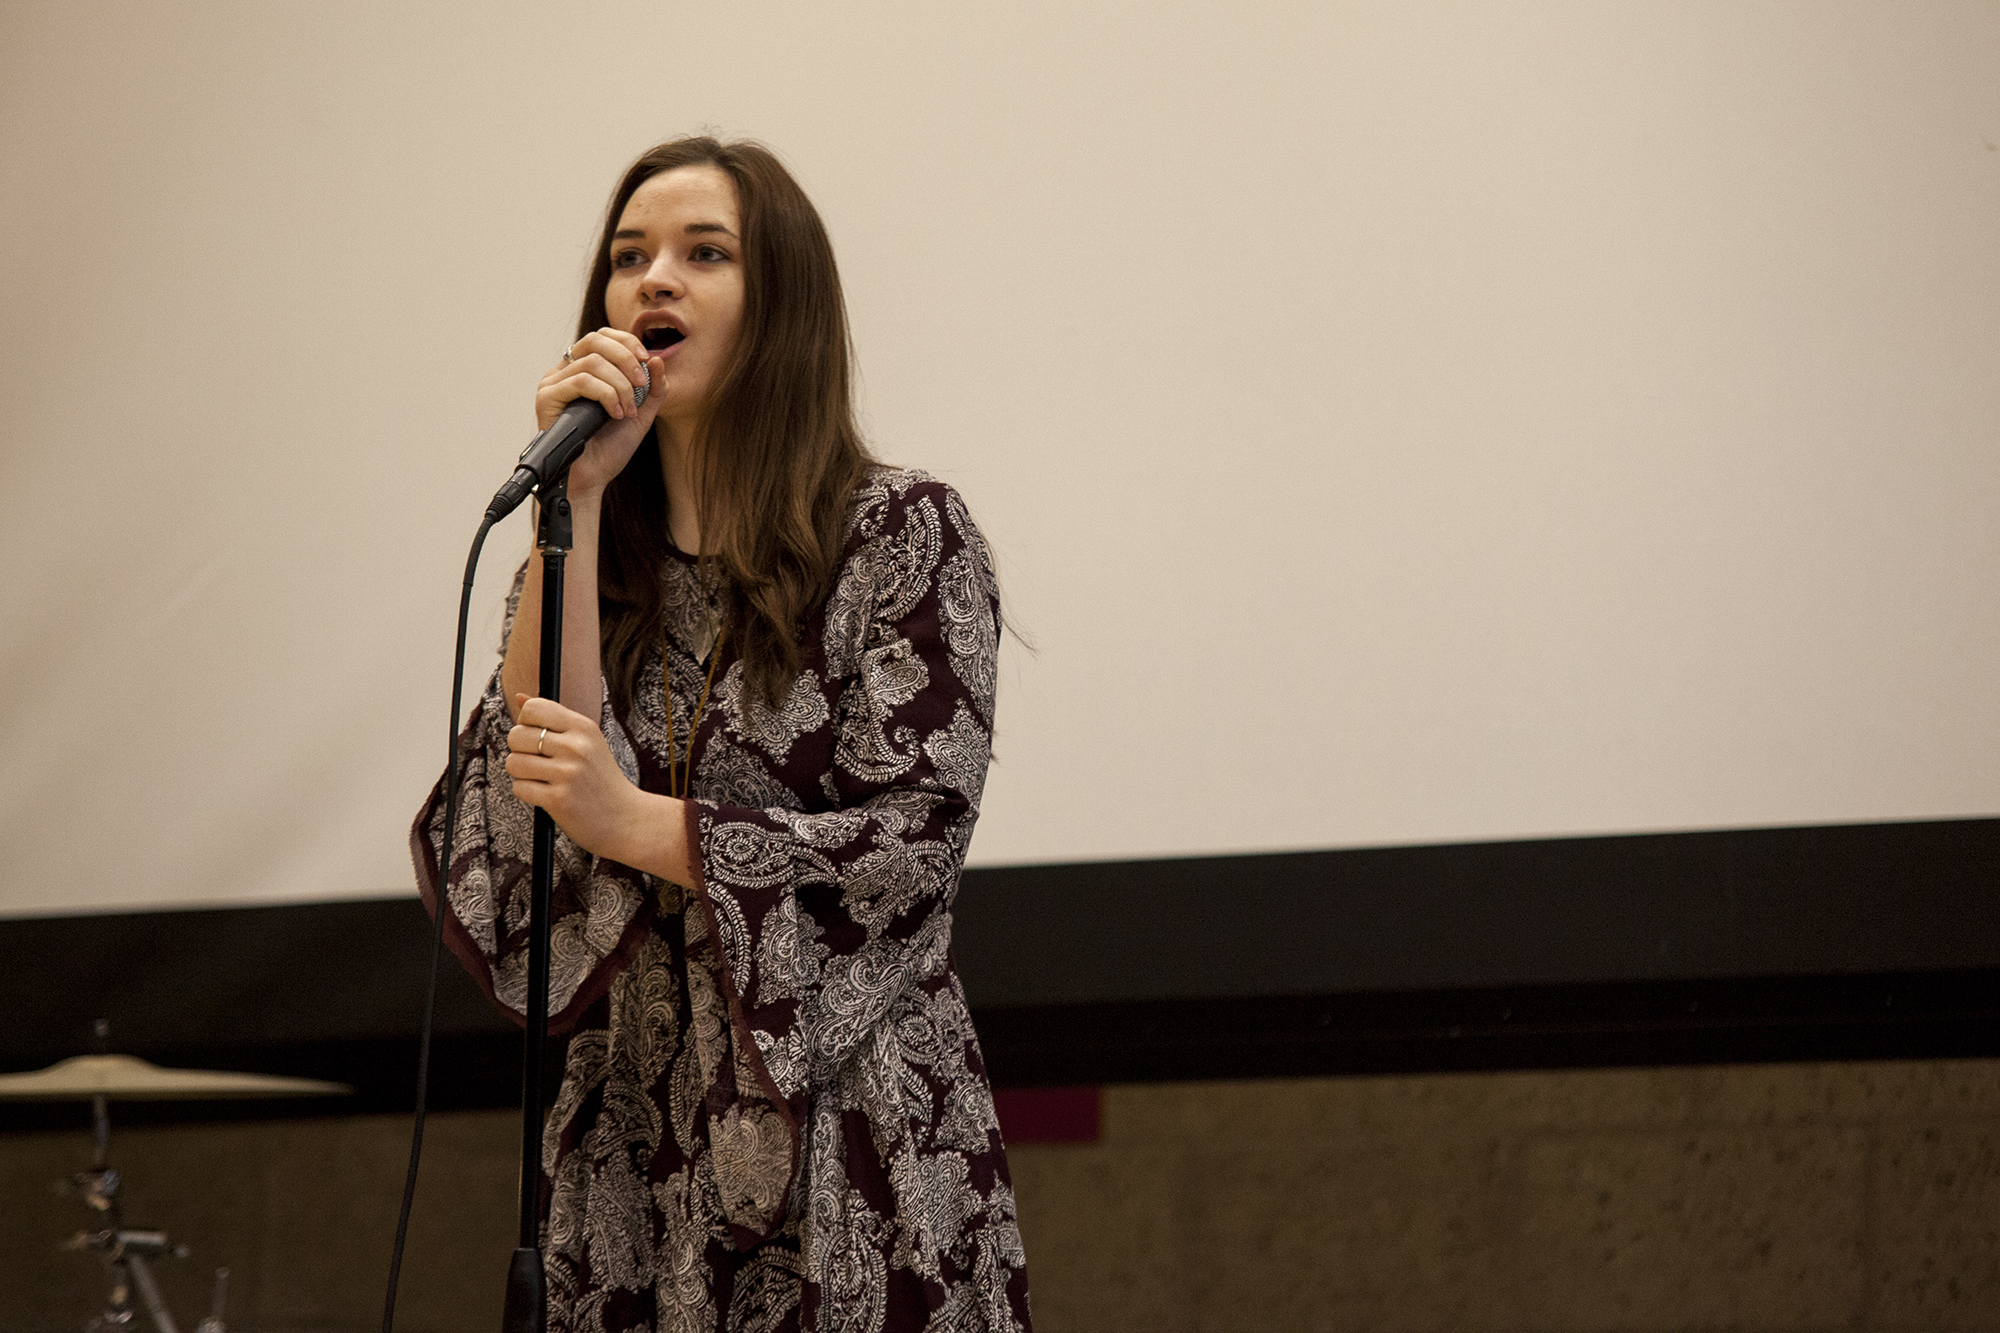 Lauren Ralbovsky sang for Famous People, the first group who performed, battling for a chance to perform at Brookfest 2016. <em>ERIC SCHMID/THE STATESMAN</em>